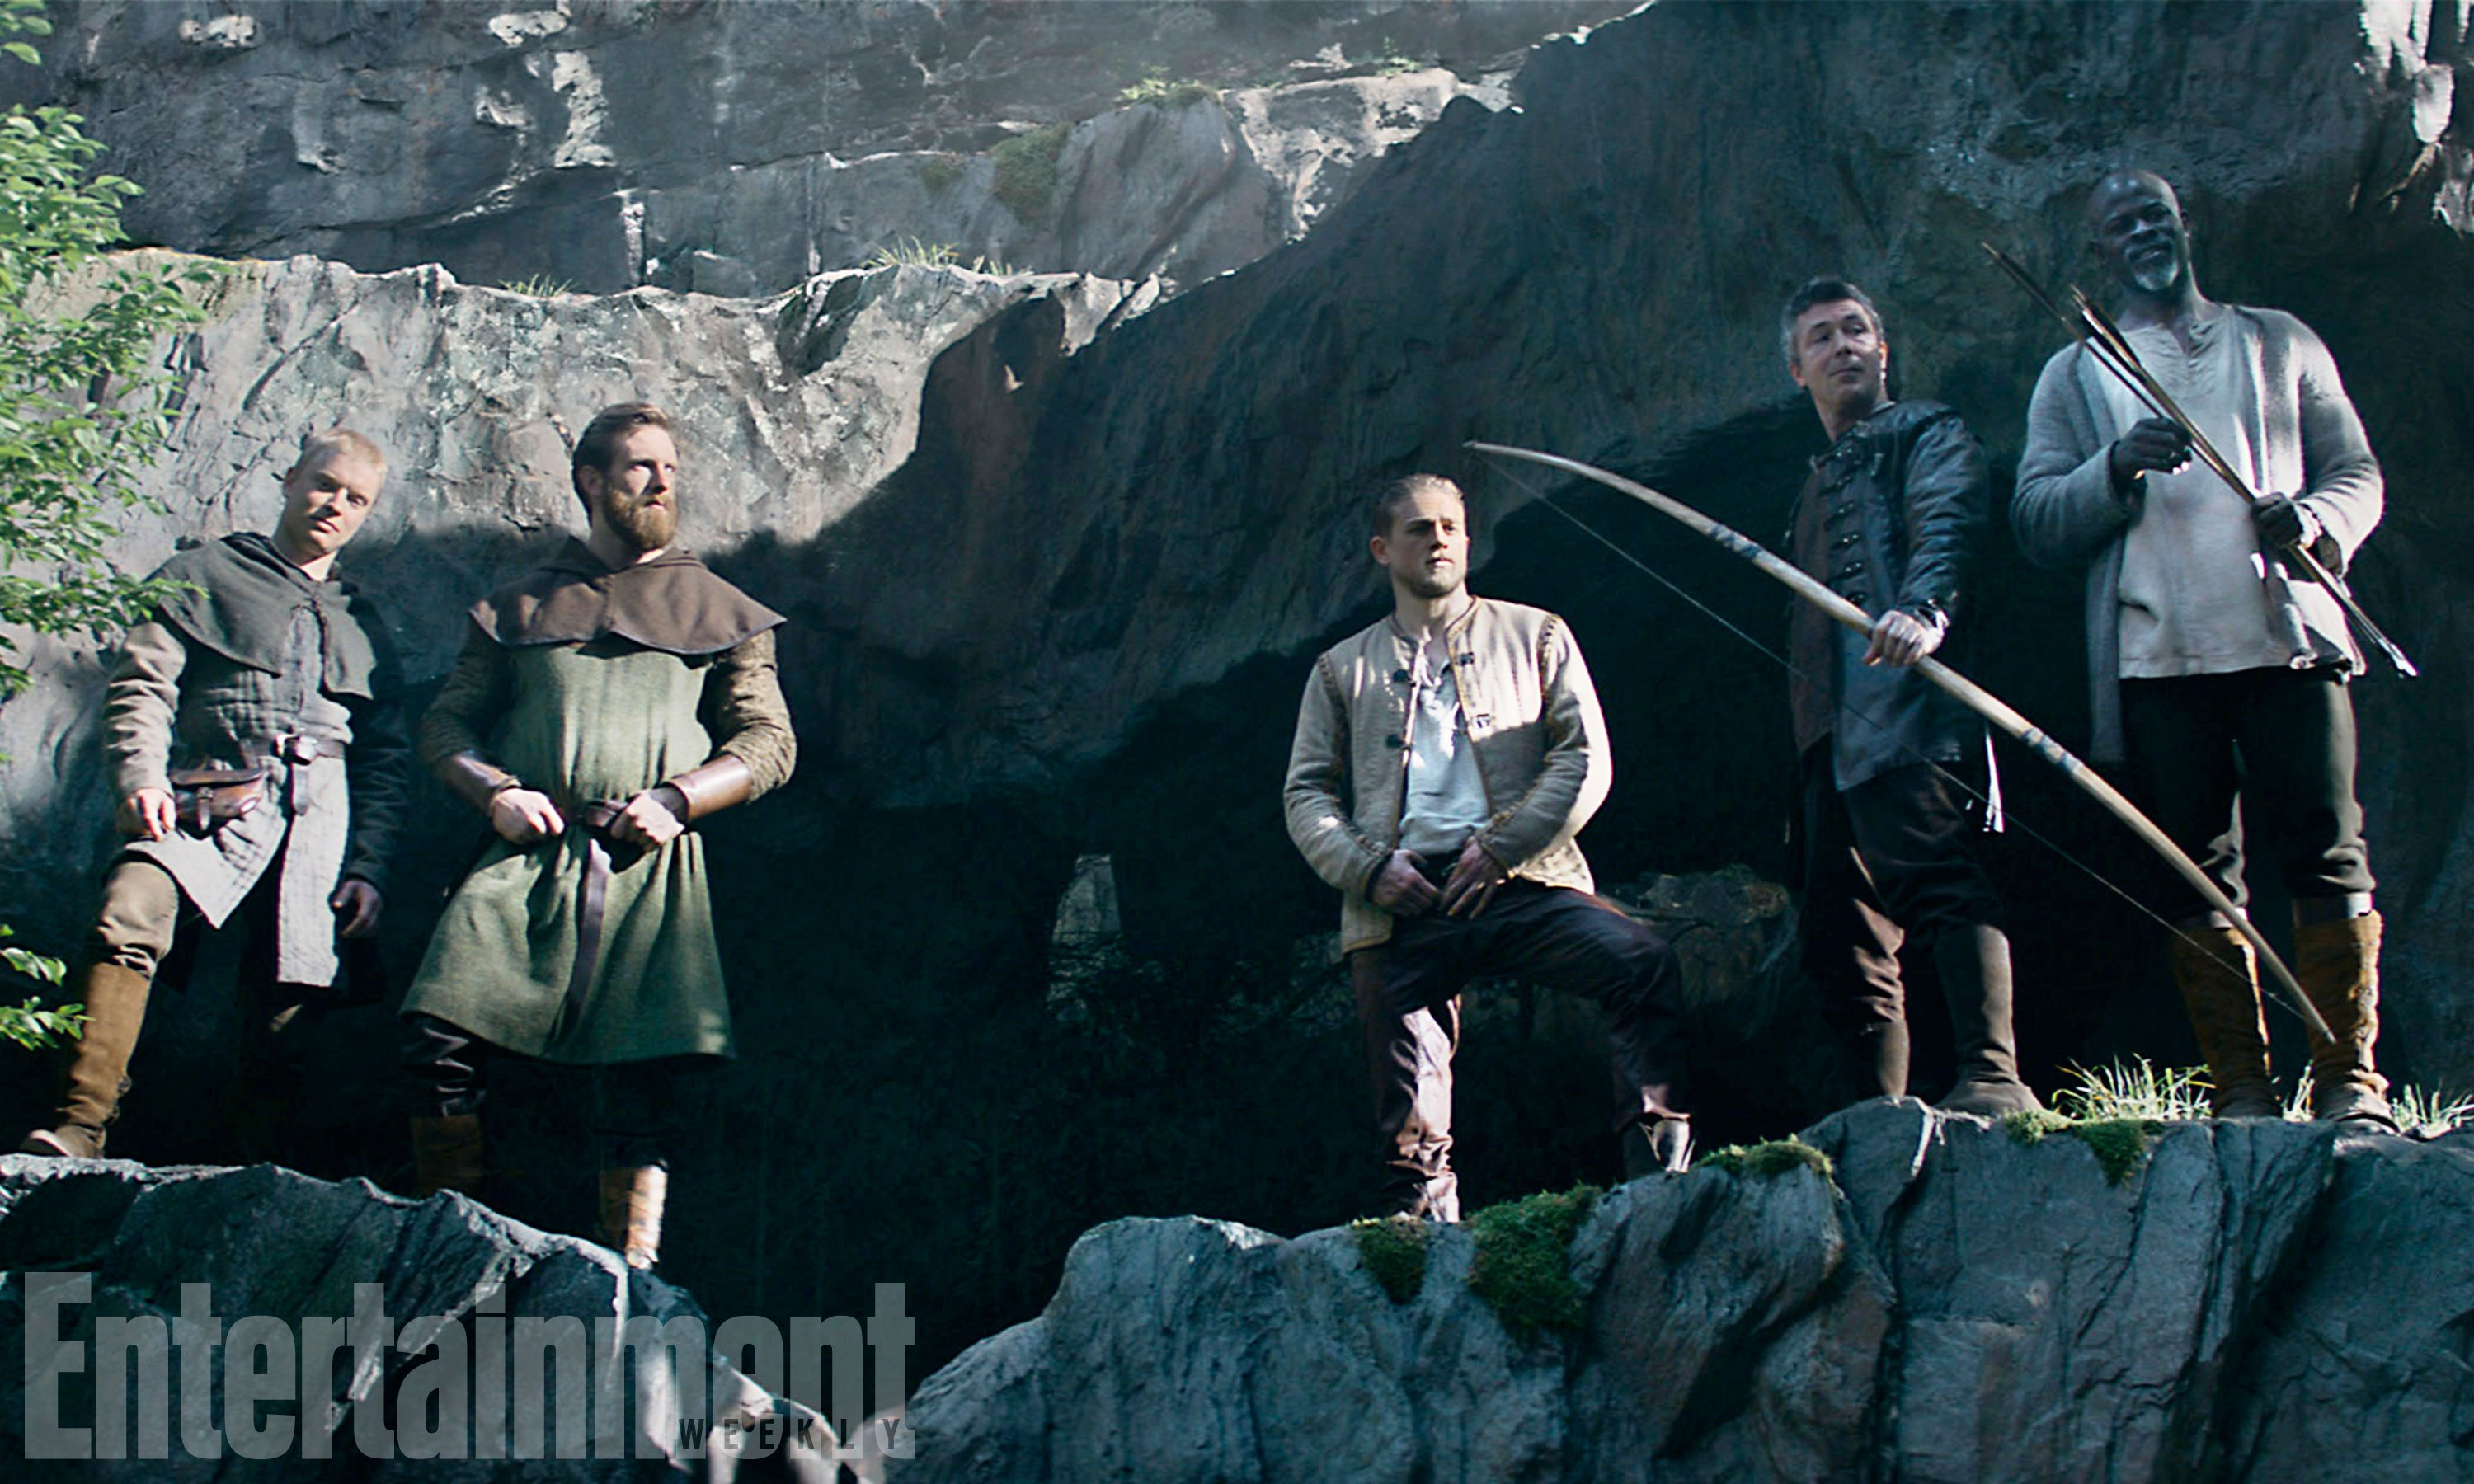 Gritty New Poster For King Arthur Legend Of The Sword Debuts